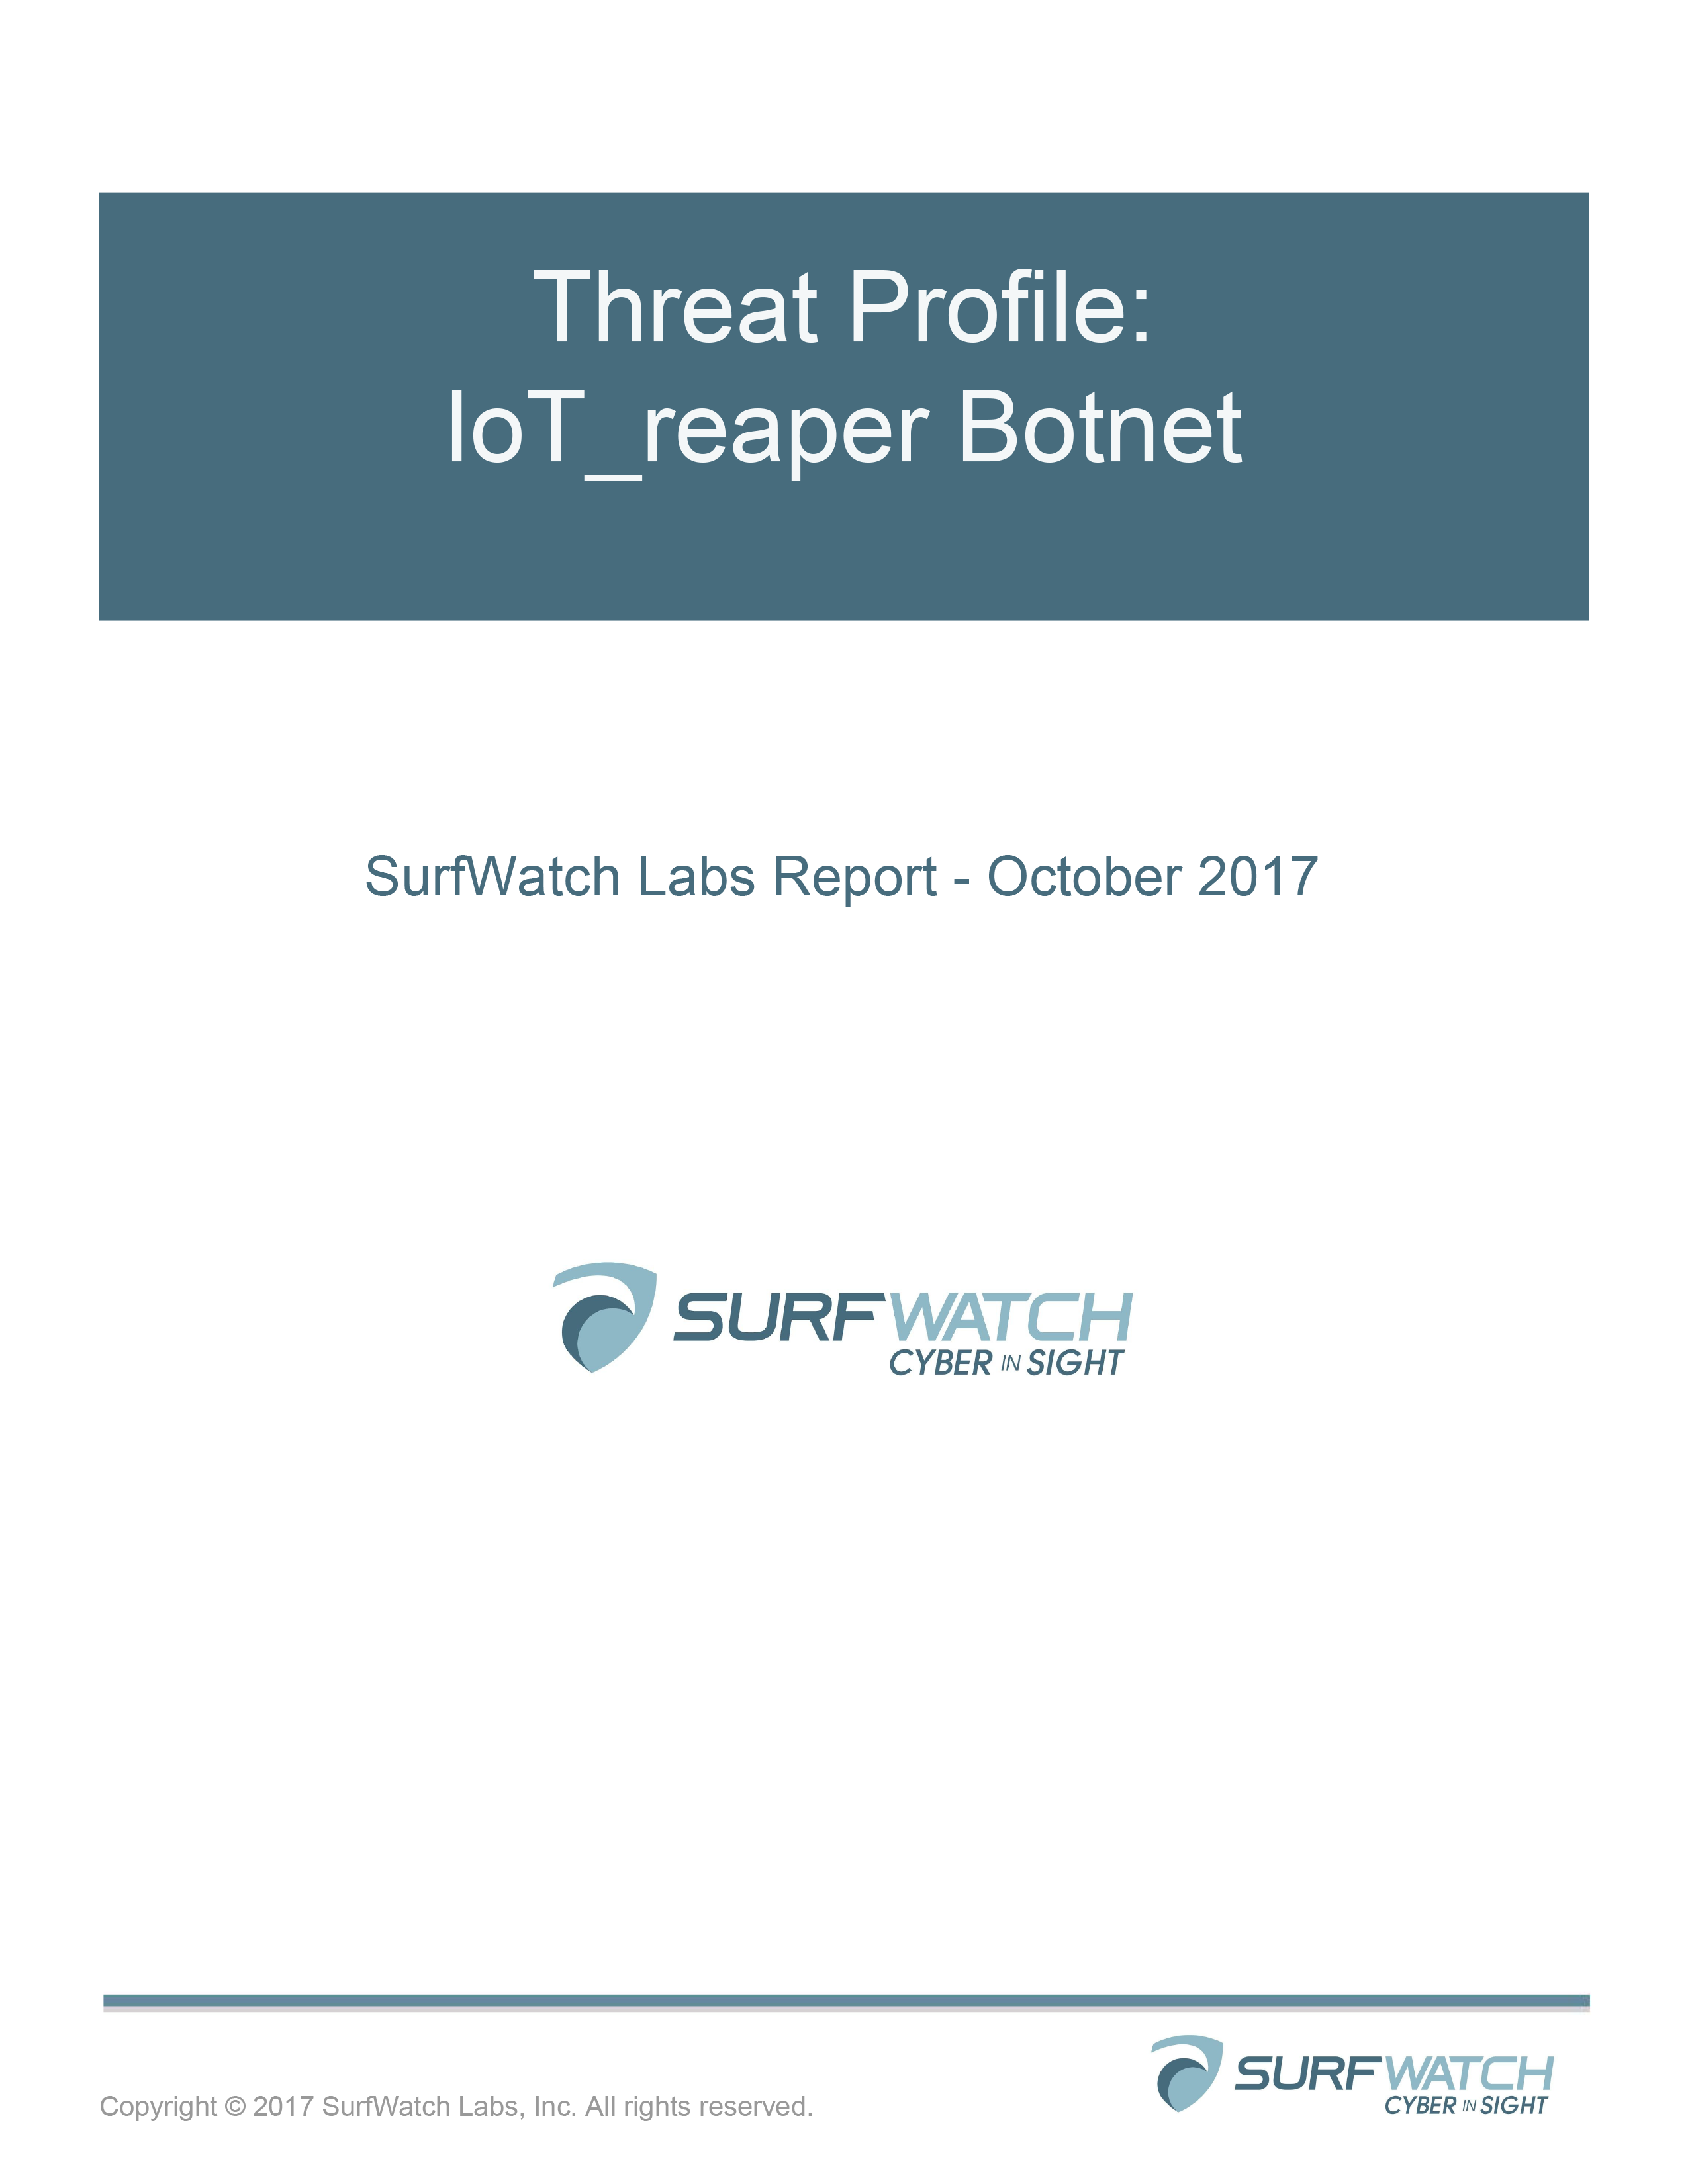 Threat profile iot reaper botnet